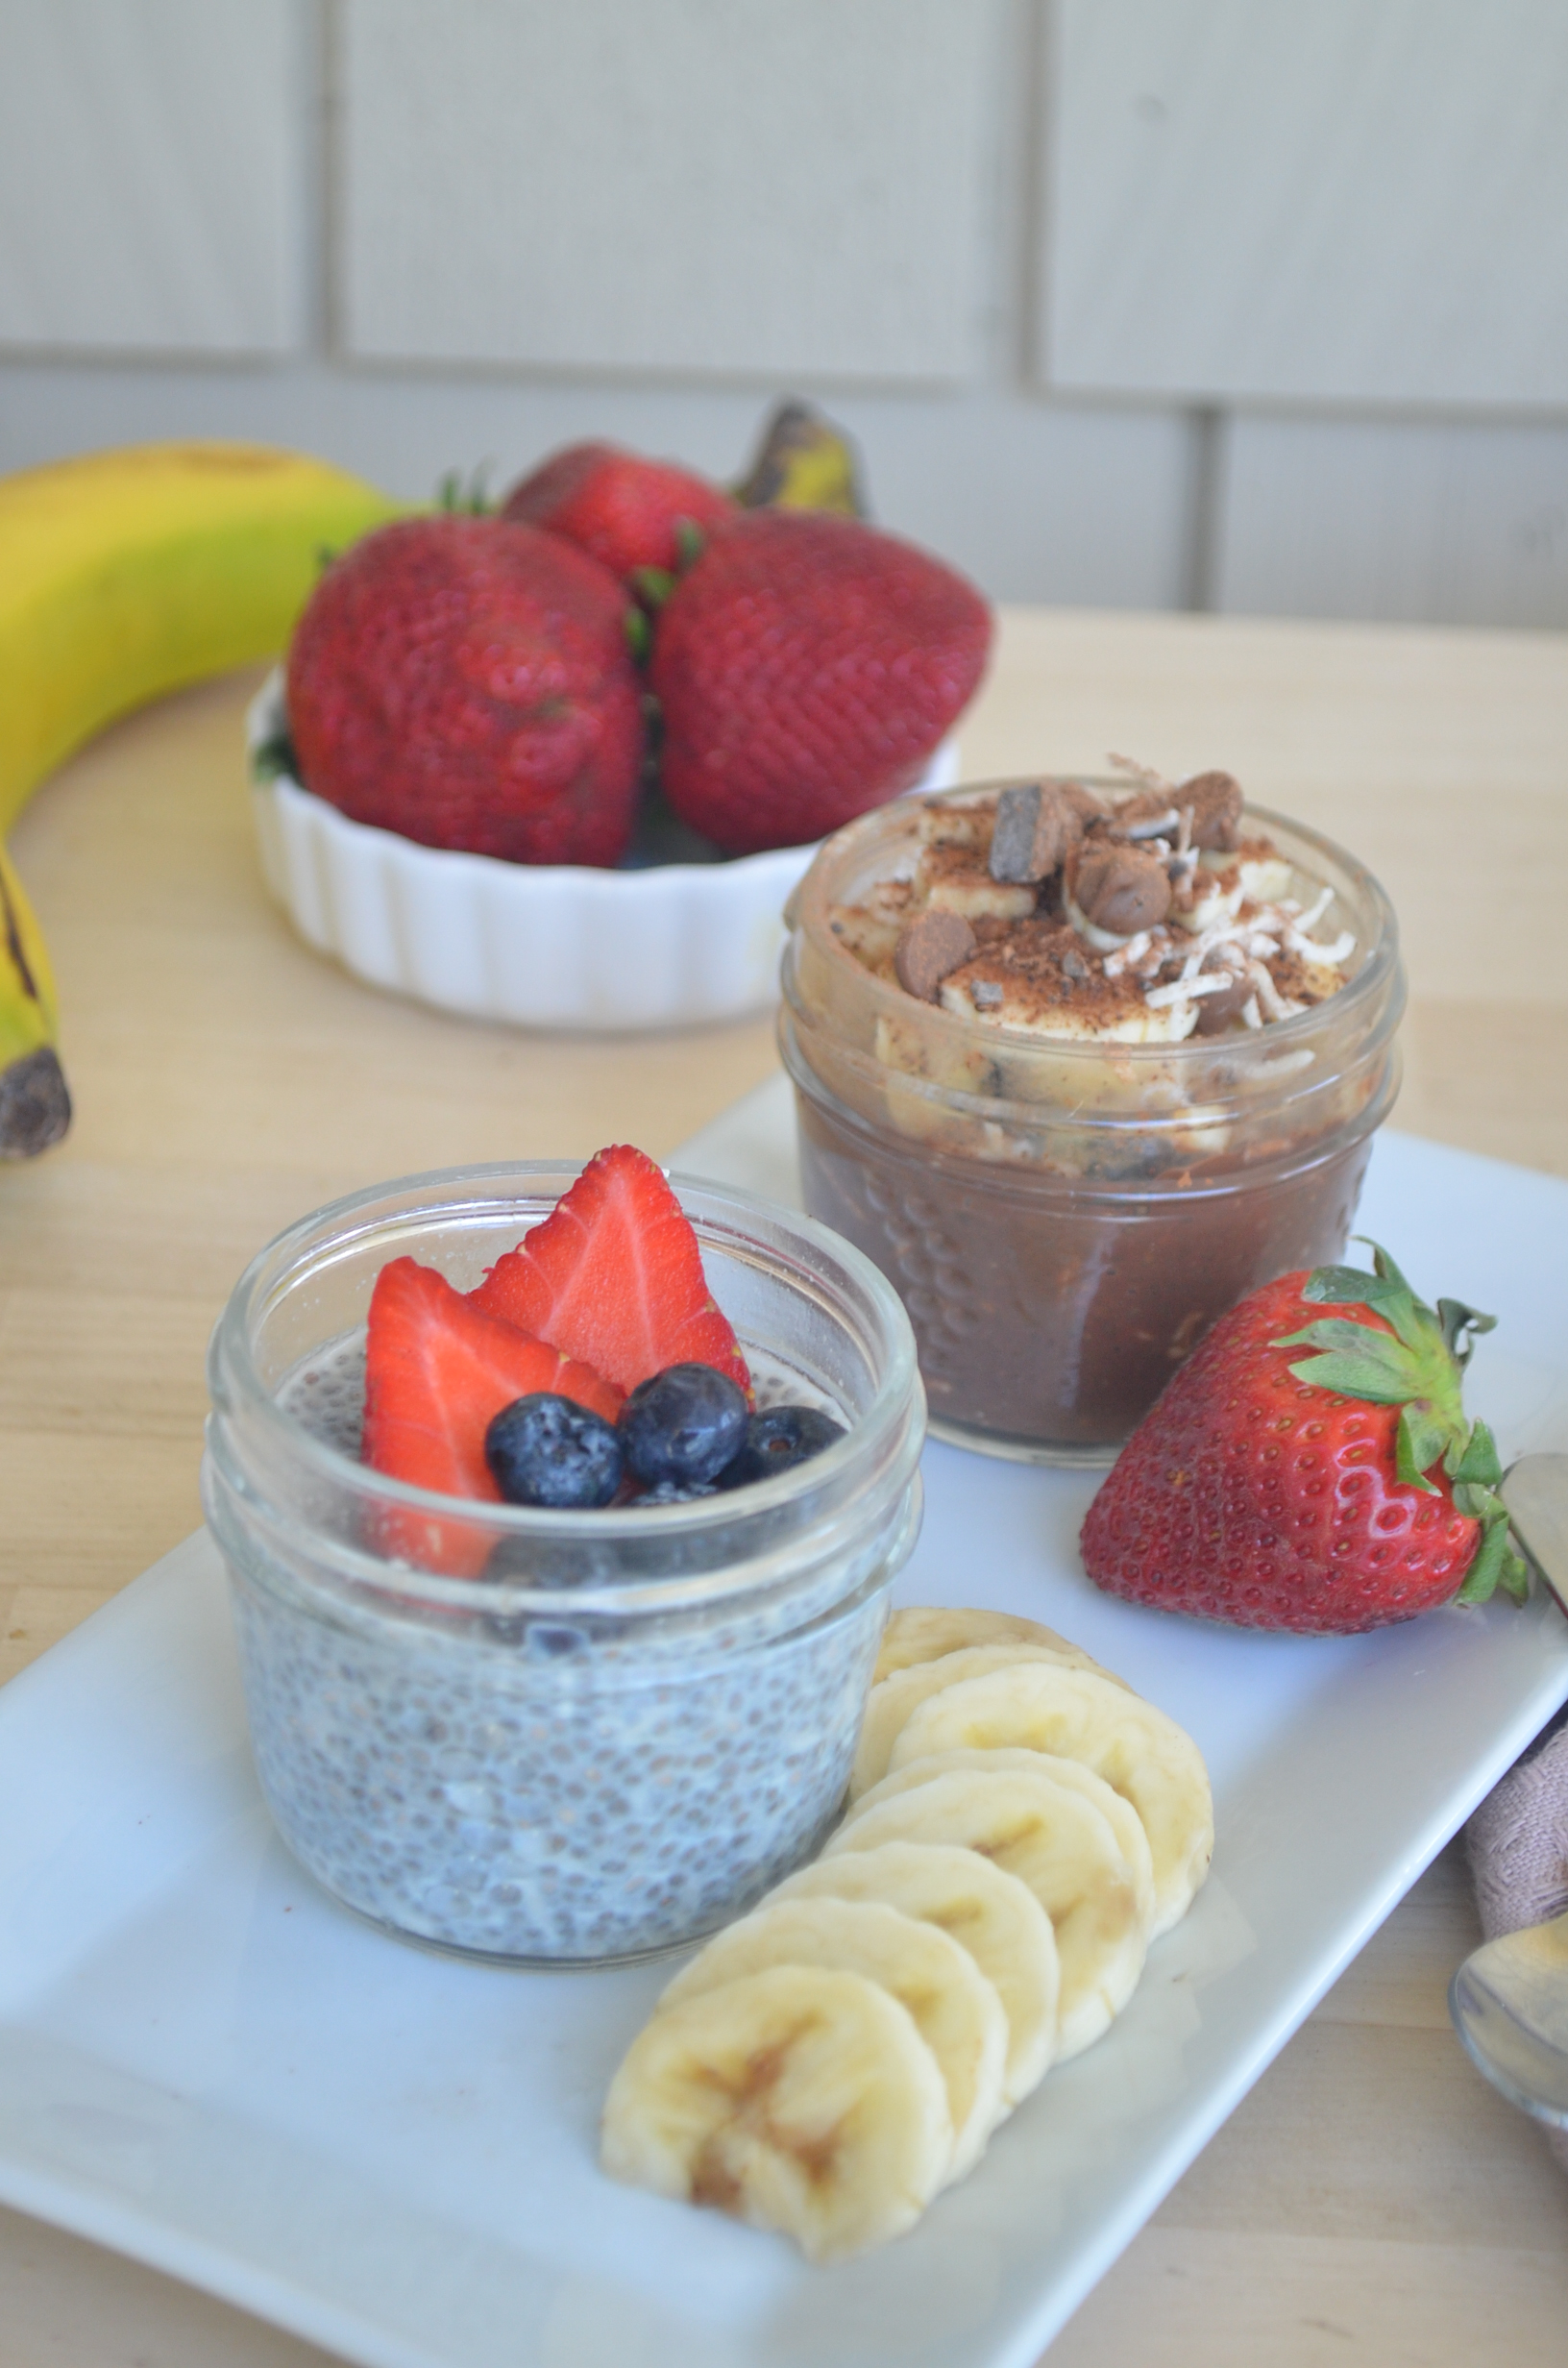 Chocolate Chia Seed Pudding for Two